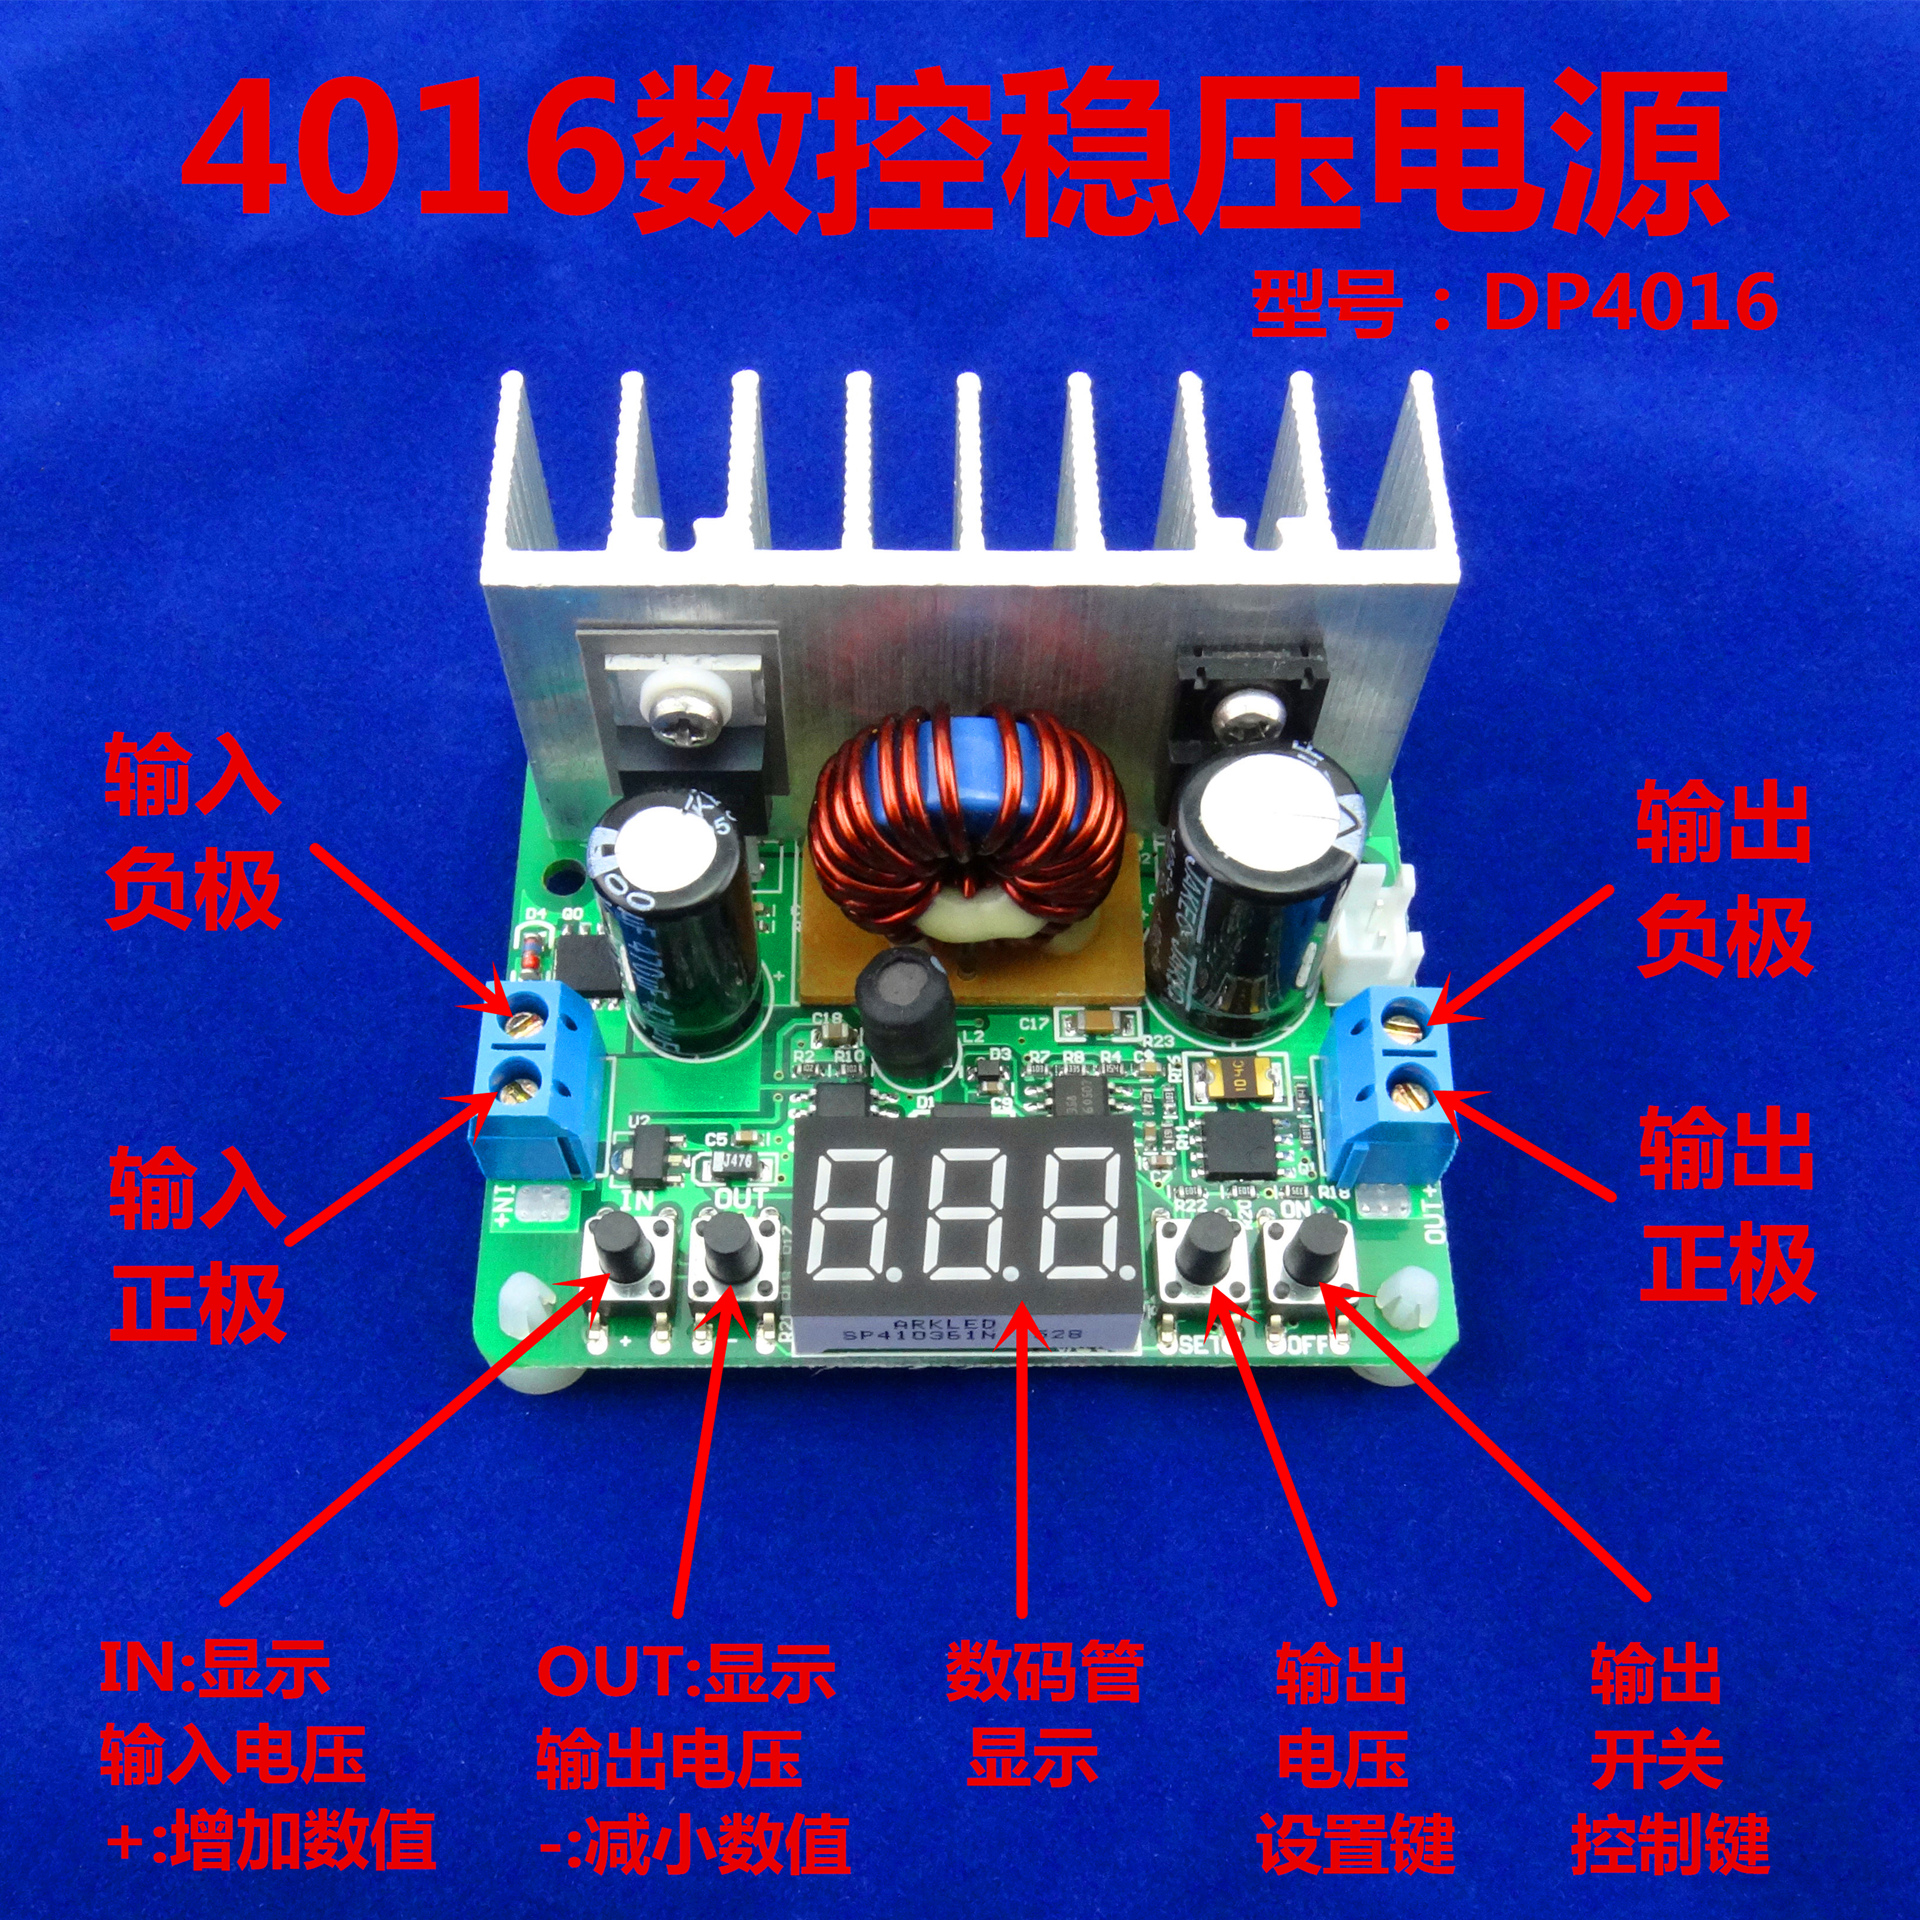 NC DC-DC DC adjustable voltage regulator module integrated voltage meter 8A voltage stabilized power supply цены онлайн